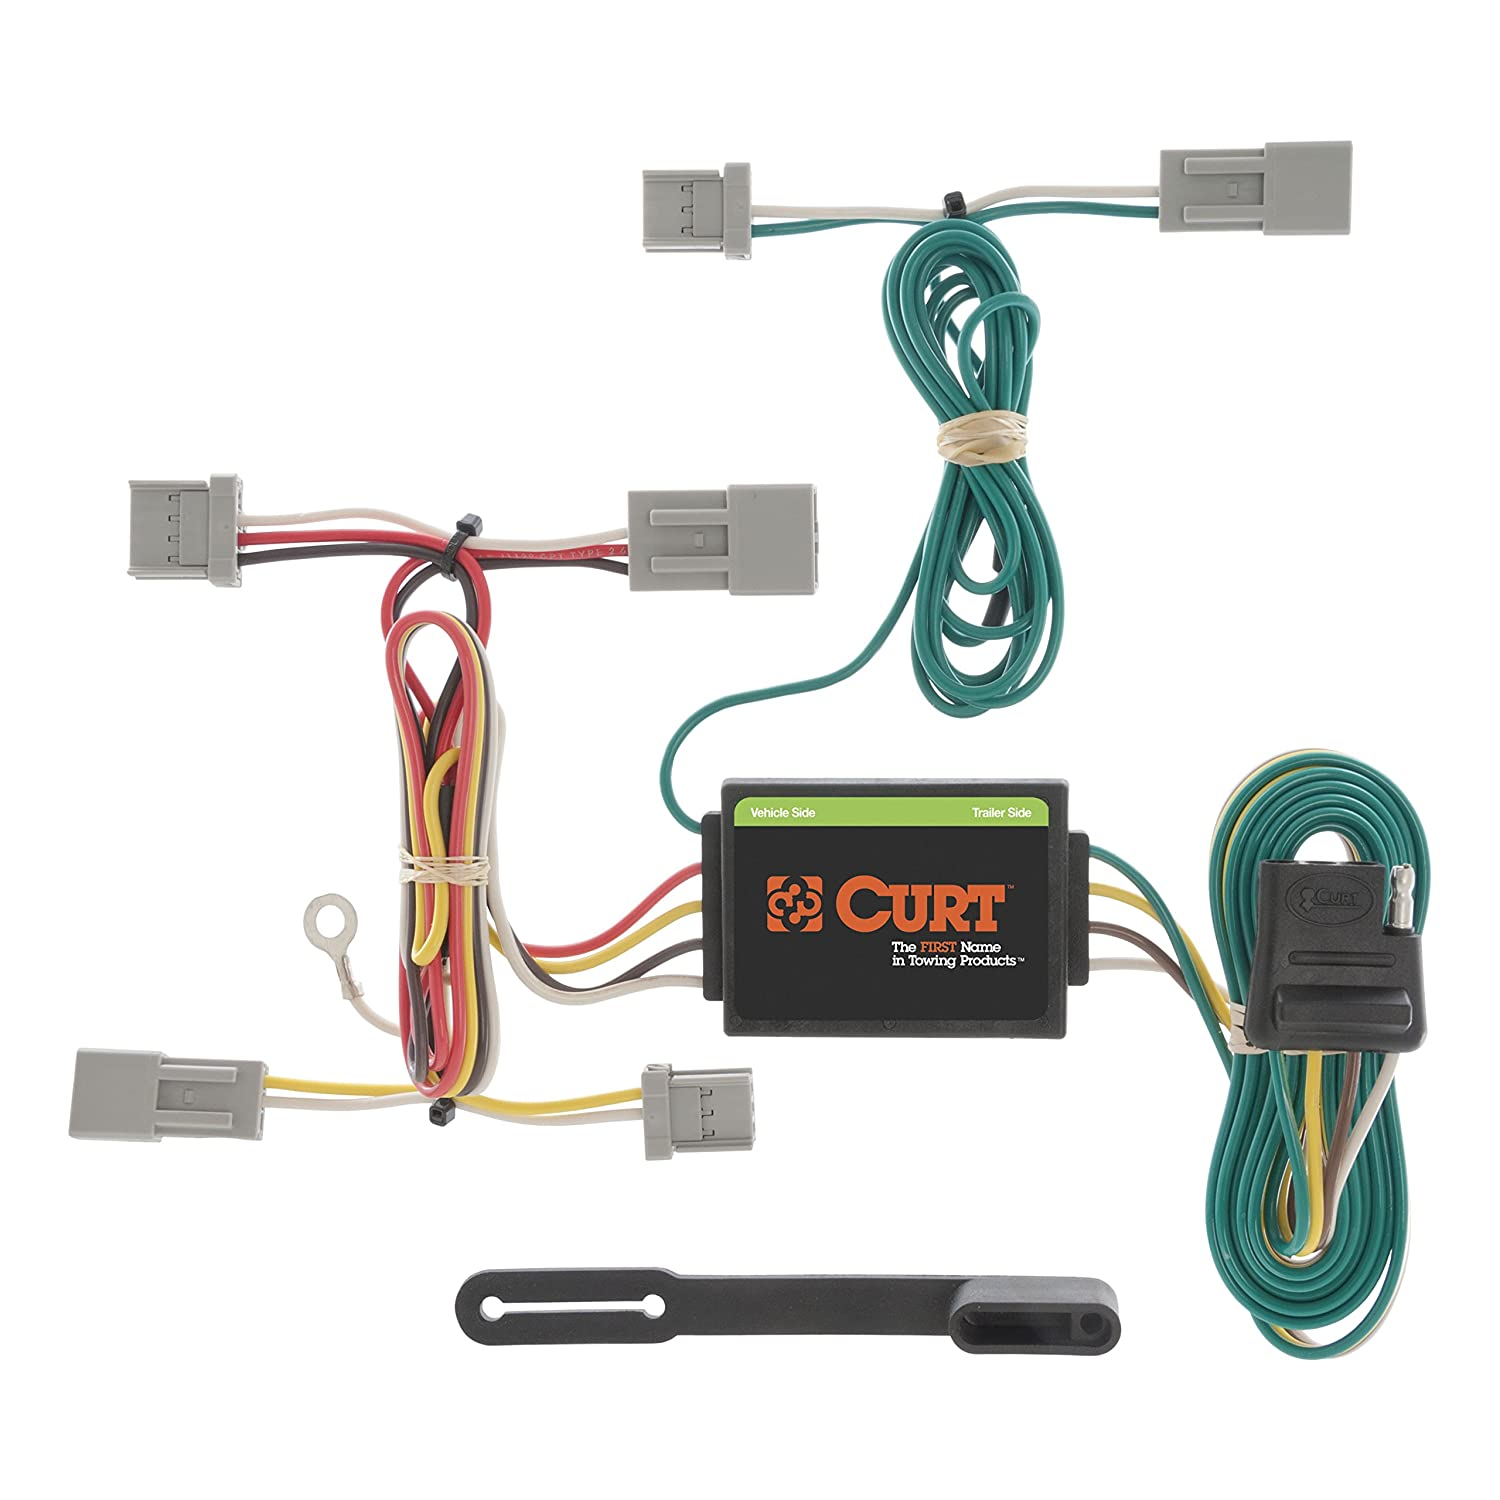 curt 56011 vehicle side custom 4 pin trailer wiring harness for select honda accord, civic, fit, mazda 3, cx 5, mitsubishi galant  2011 mitsubishi outlander trailer